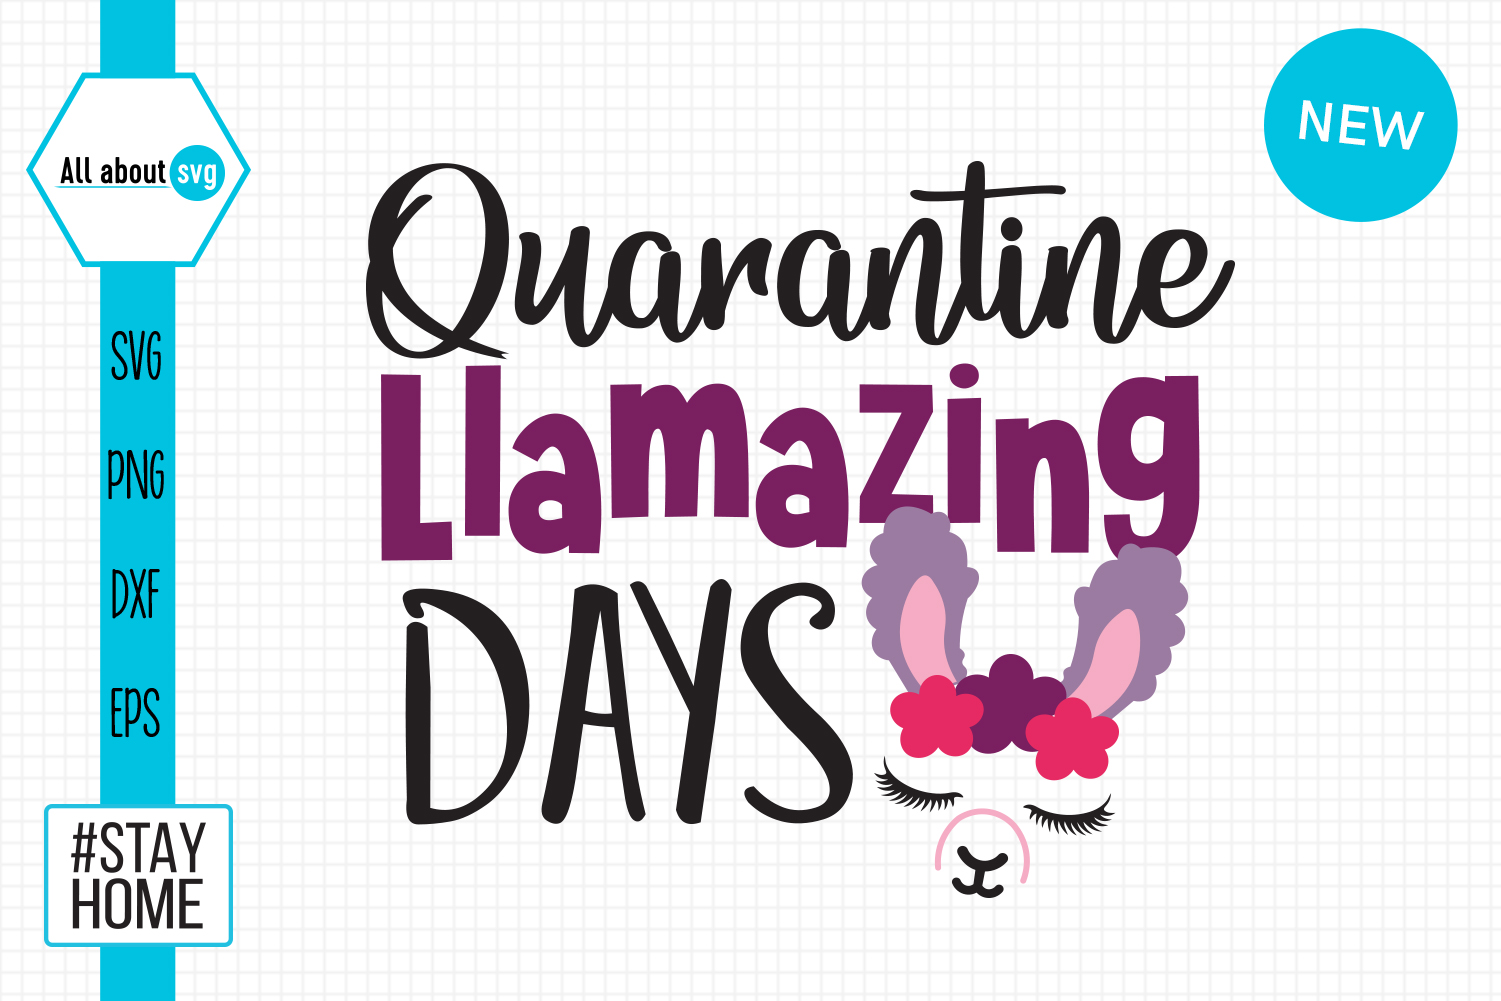 Download Free Quarantine Llamazing Days Svg Grafico Por All About Svg for Cricut Explore, Silhouette and other cutting machines.